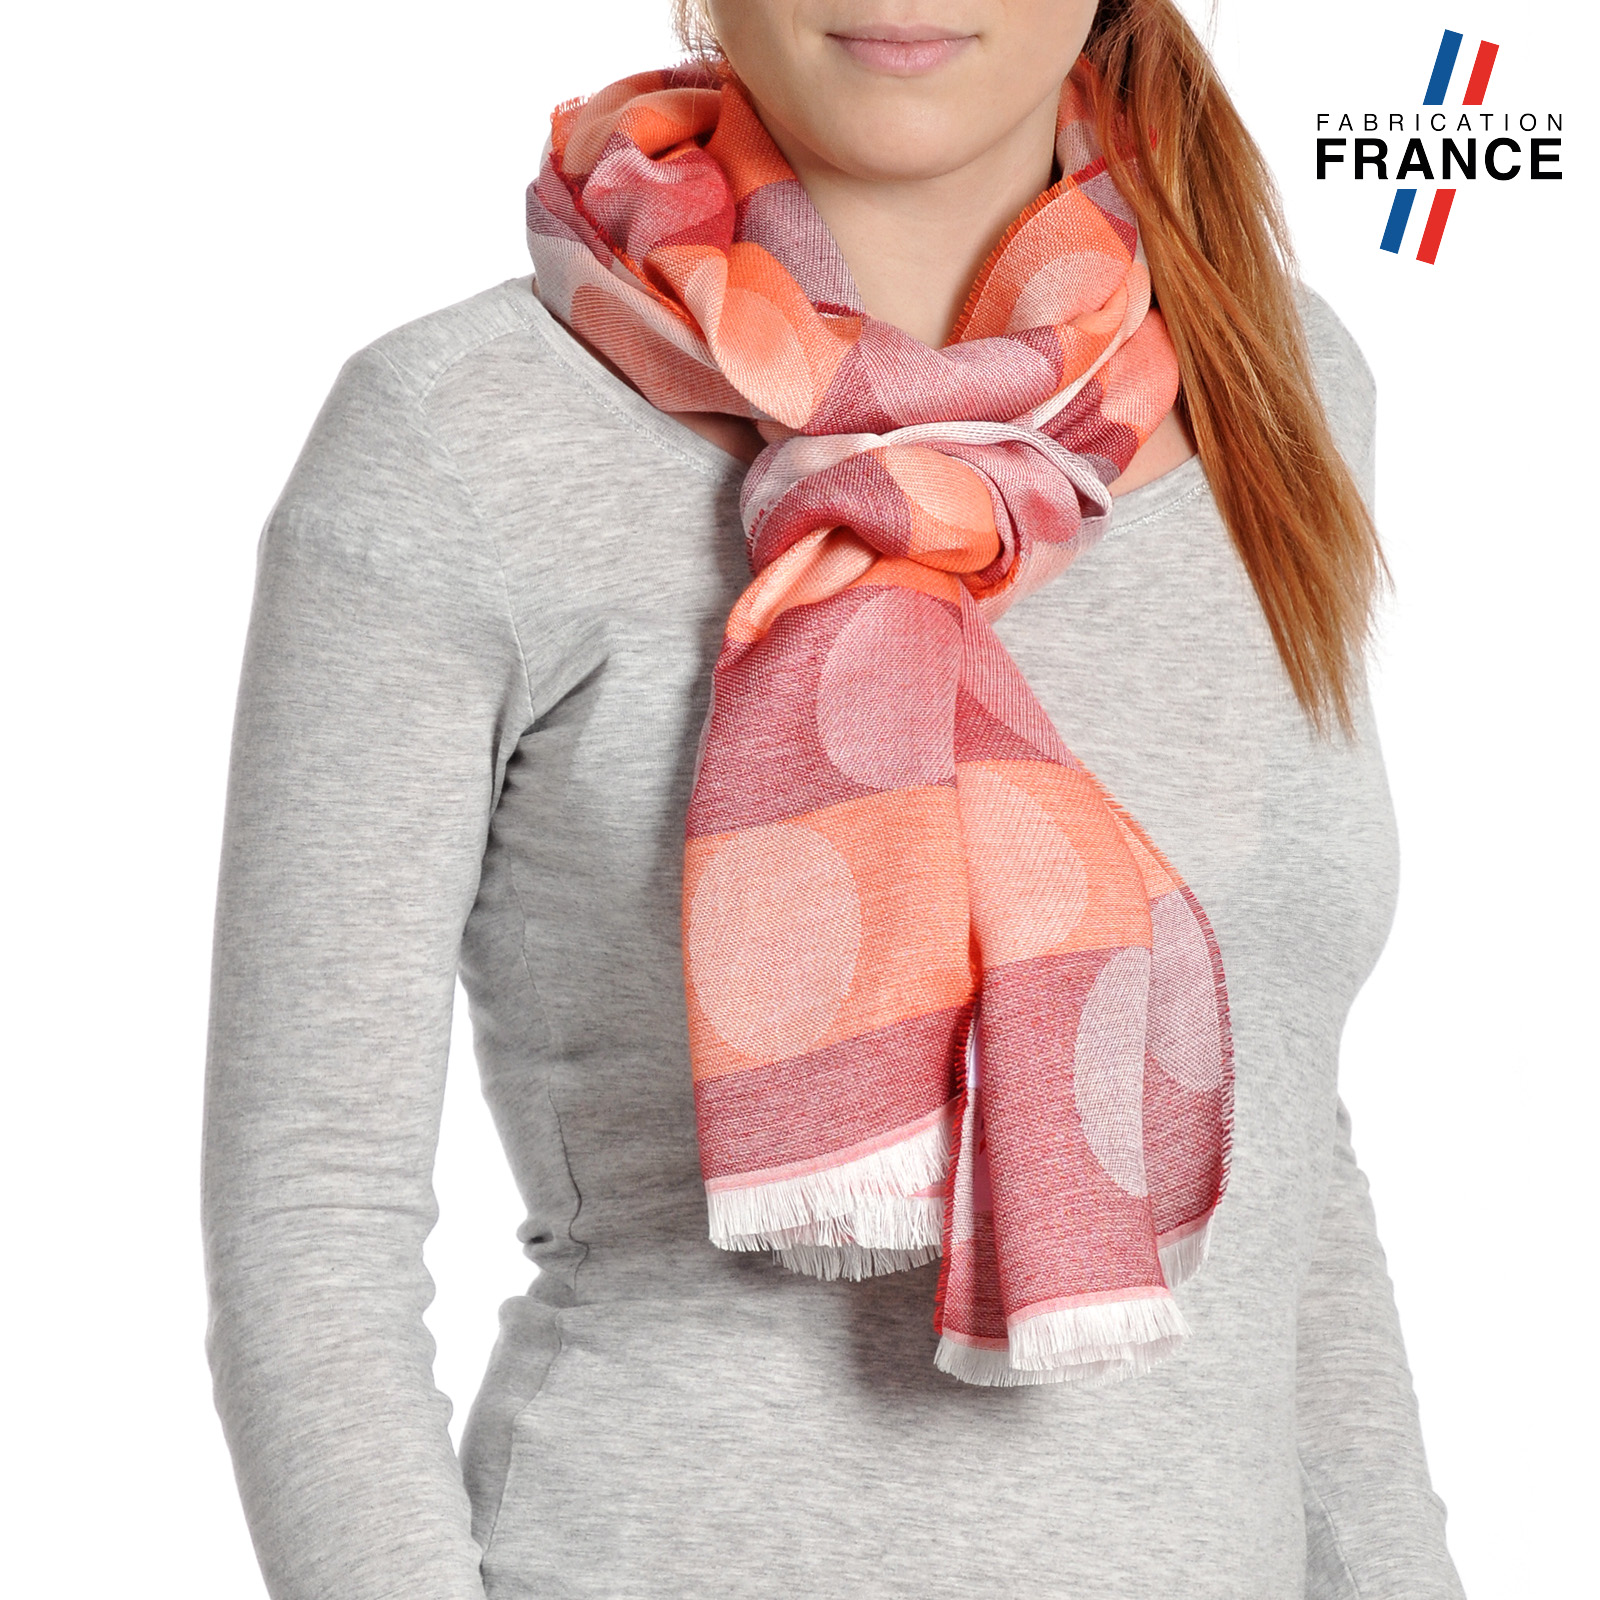 AT-04288-VF16-LB_FR-echarpe-legere-rouge-orange-gros-pois